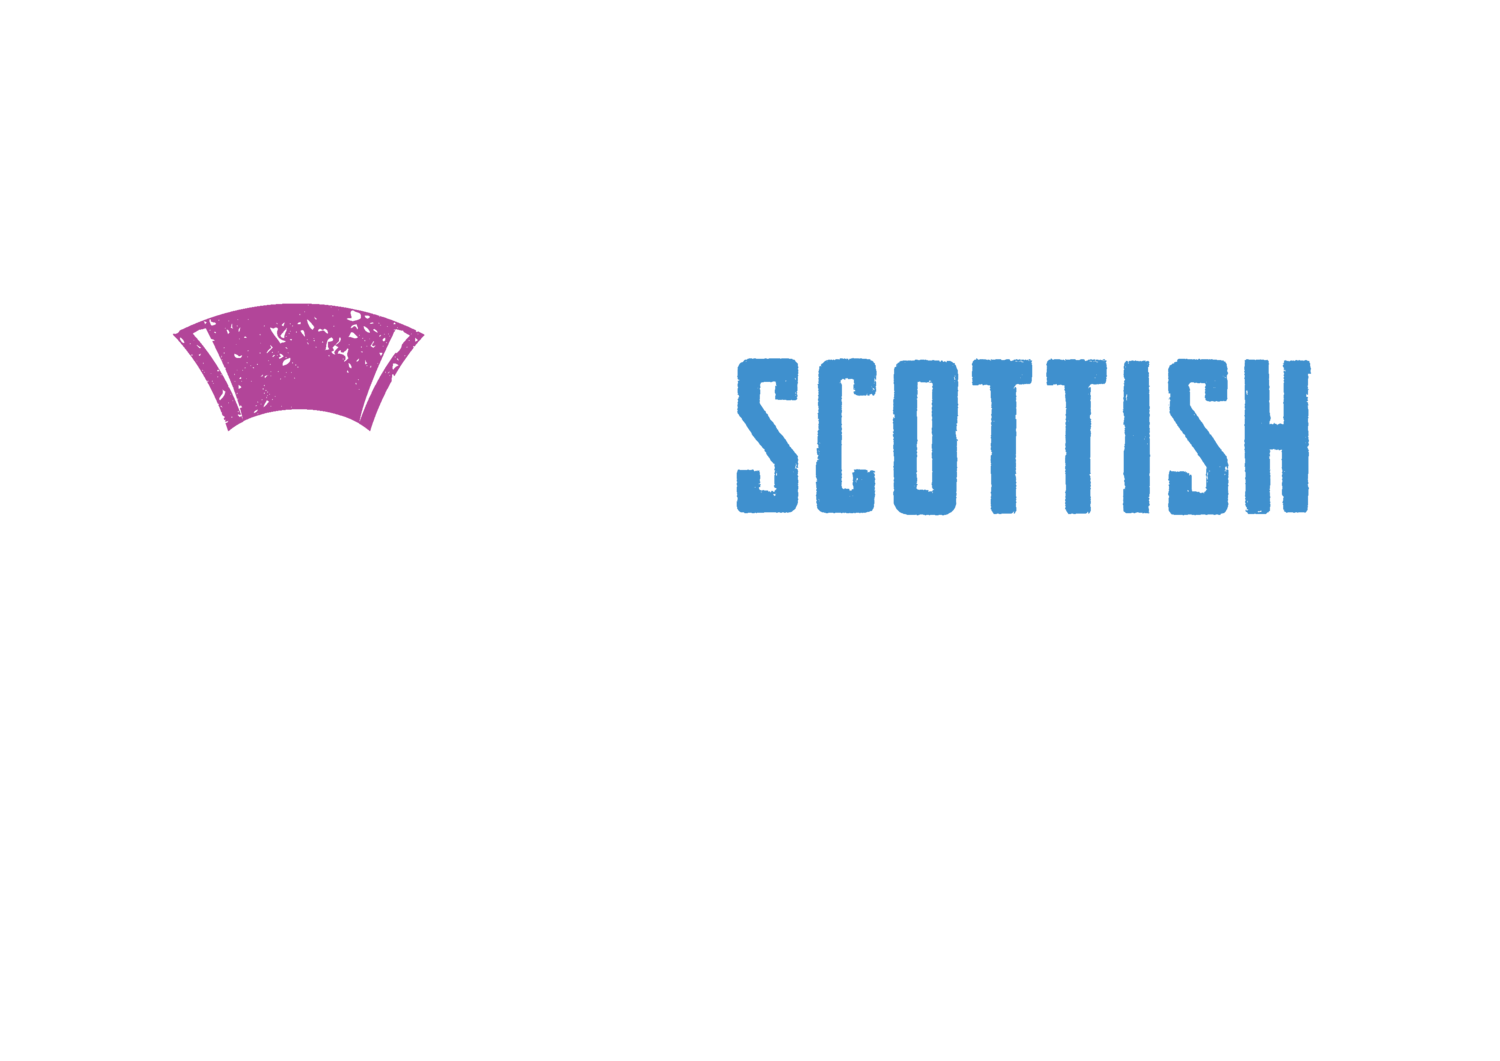 The Scottish Gantry